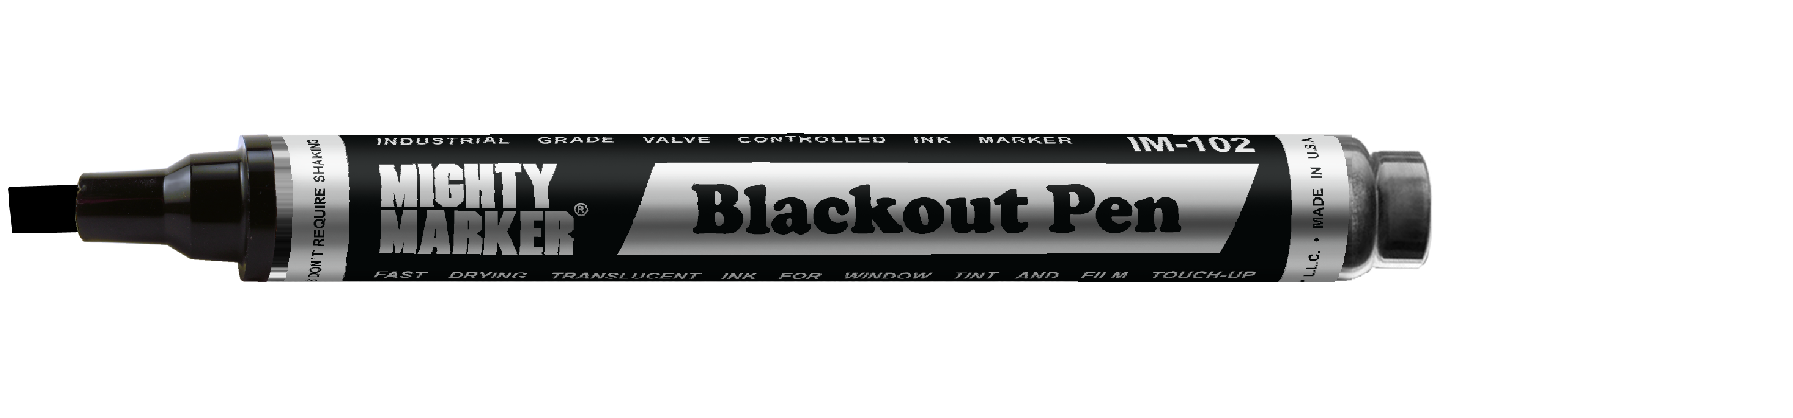 Mighty Marker Blackout Pen